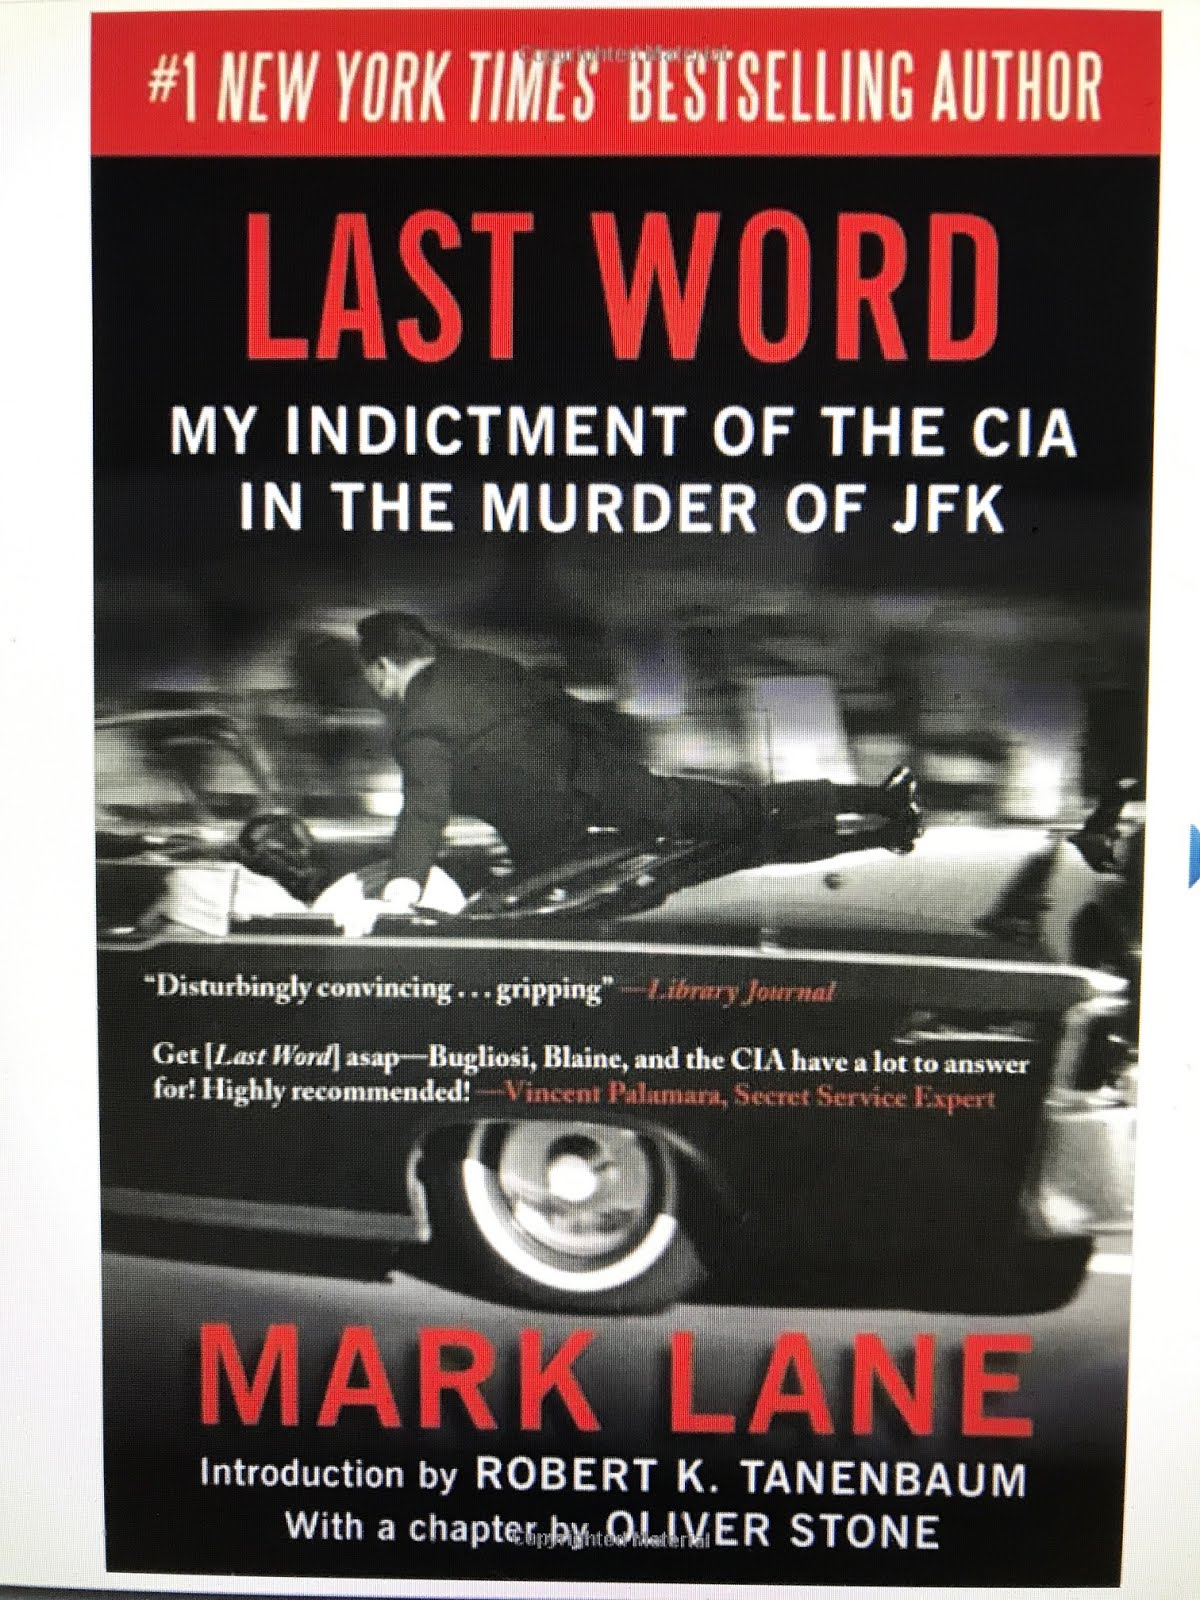 DEBUNKS BUGLIOSI, BLAINE AND THE CIA!